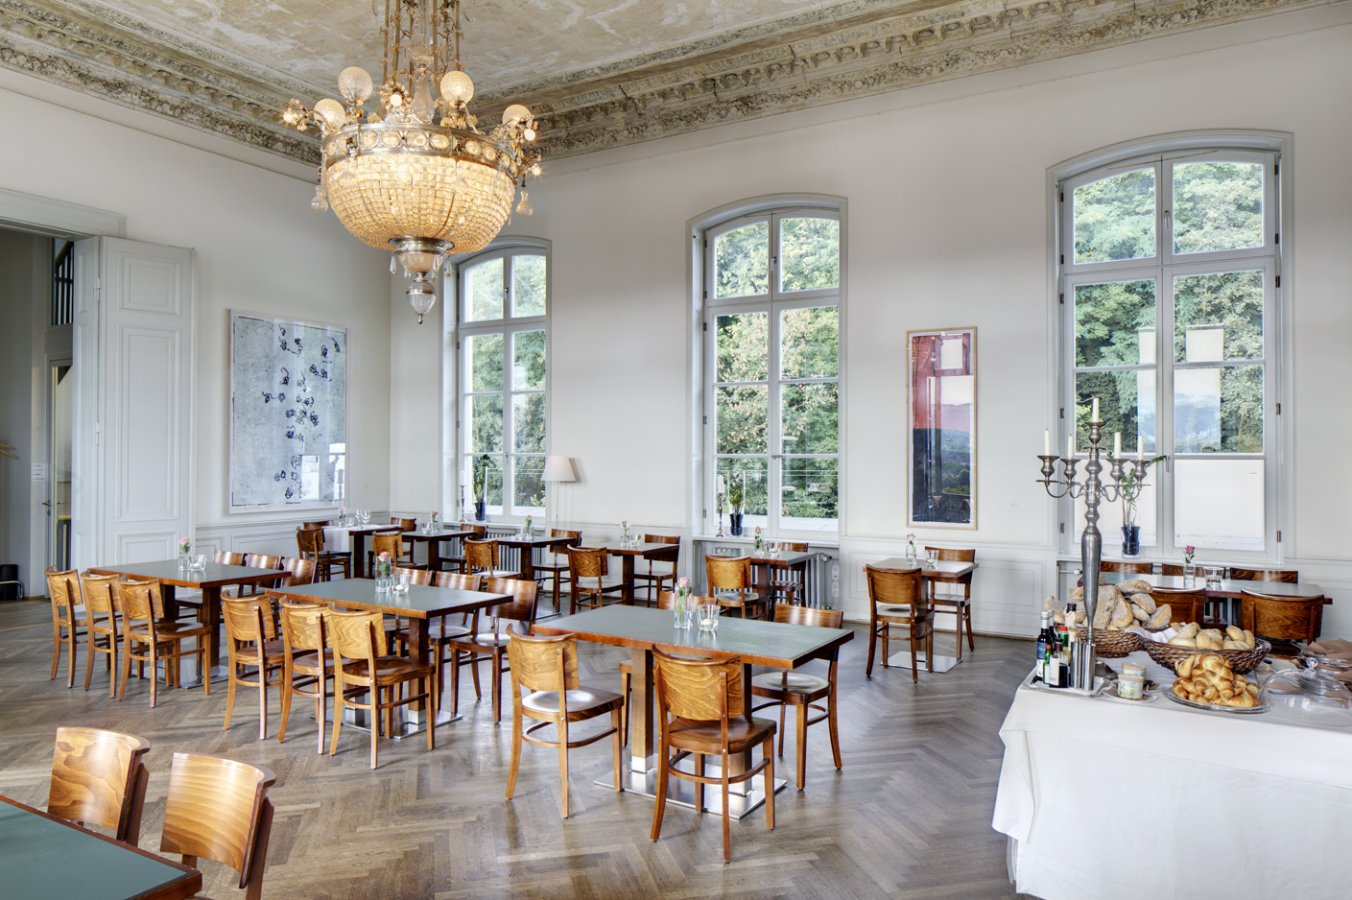 Conferences celebrations arp museum bahnhof rolandseck for Bistro interieur no 253 im arp museum